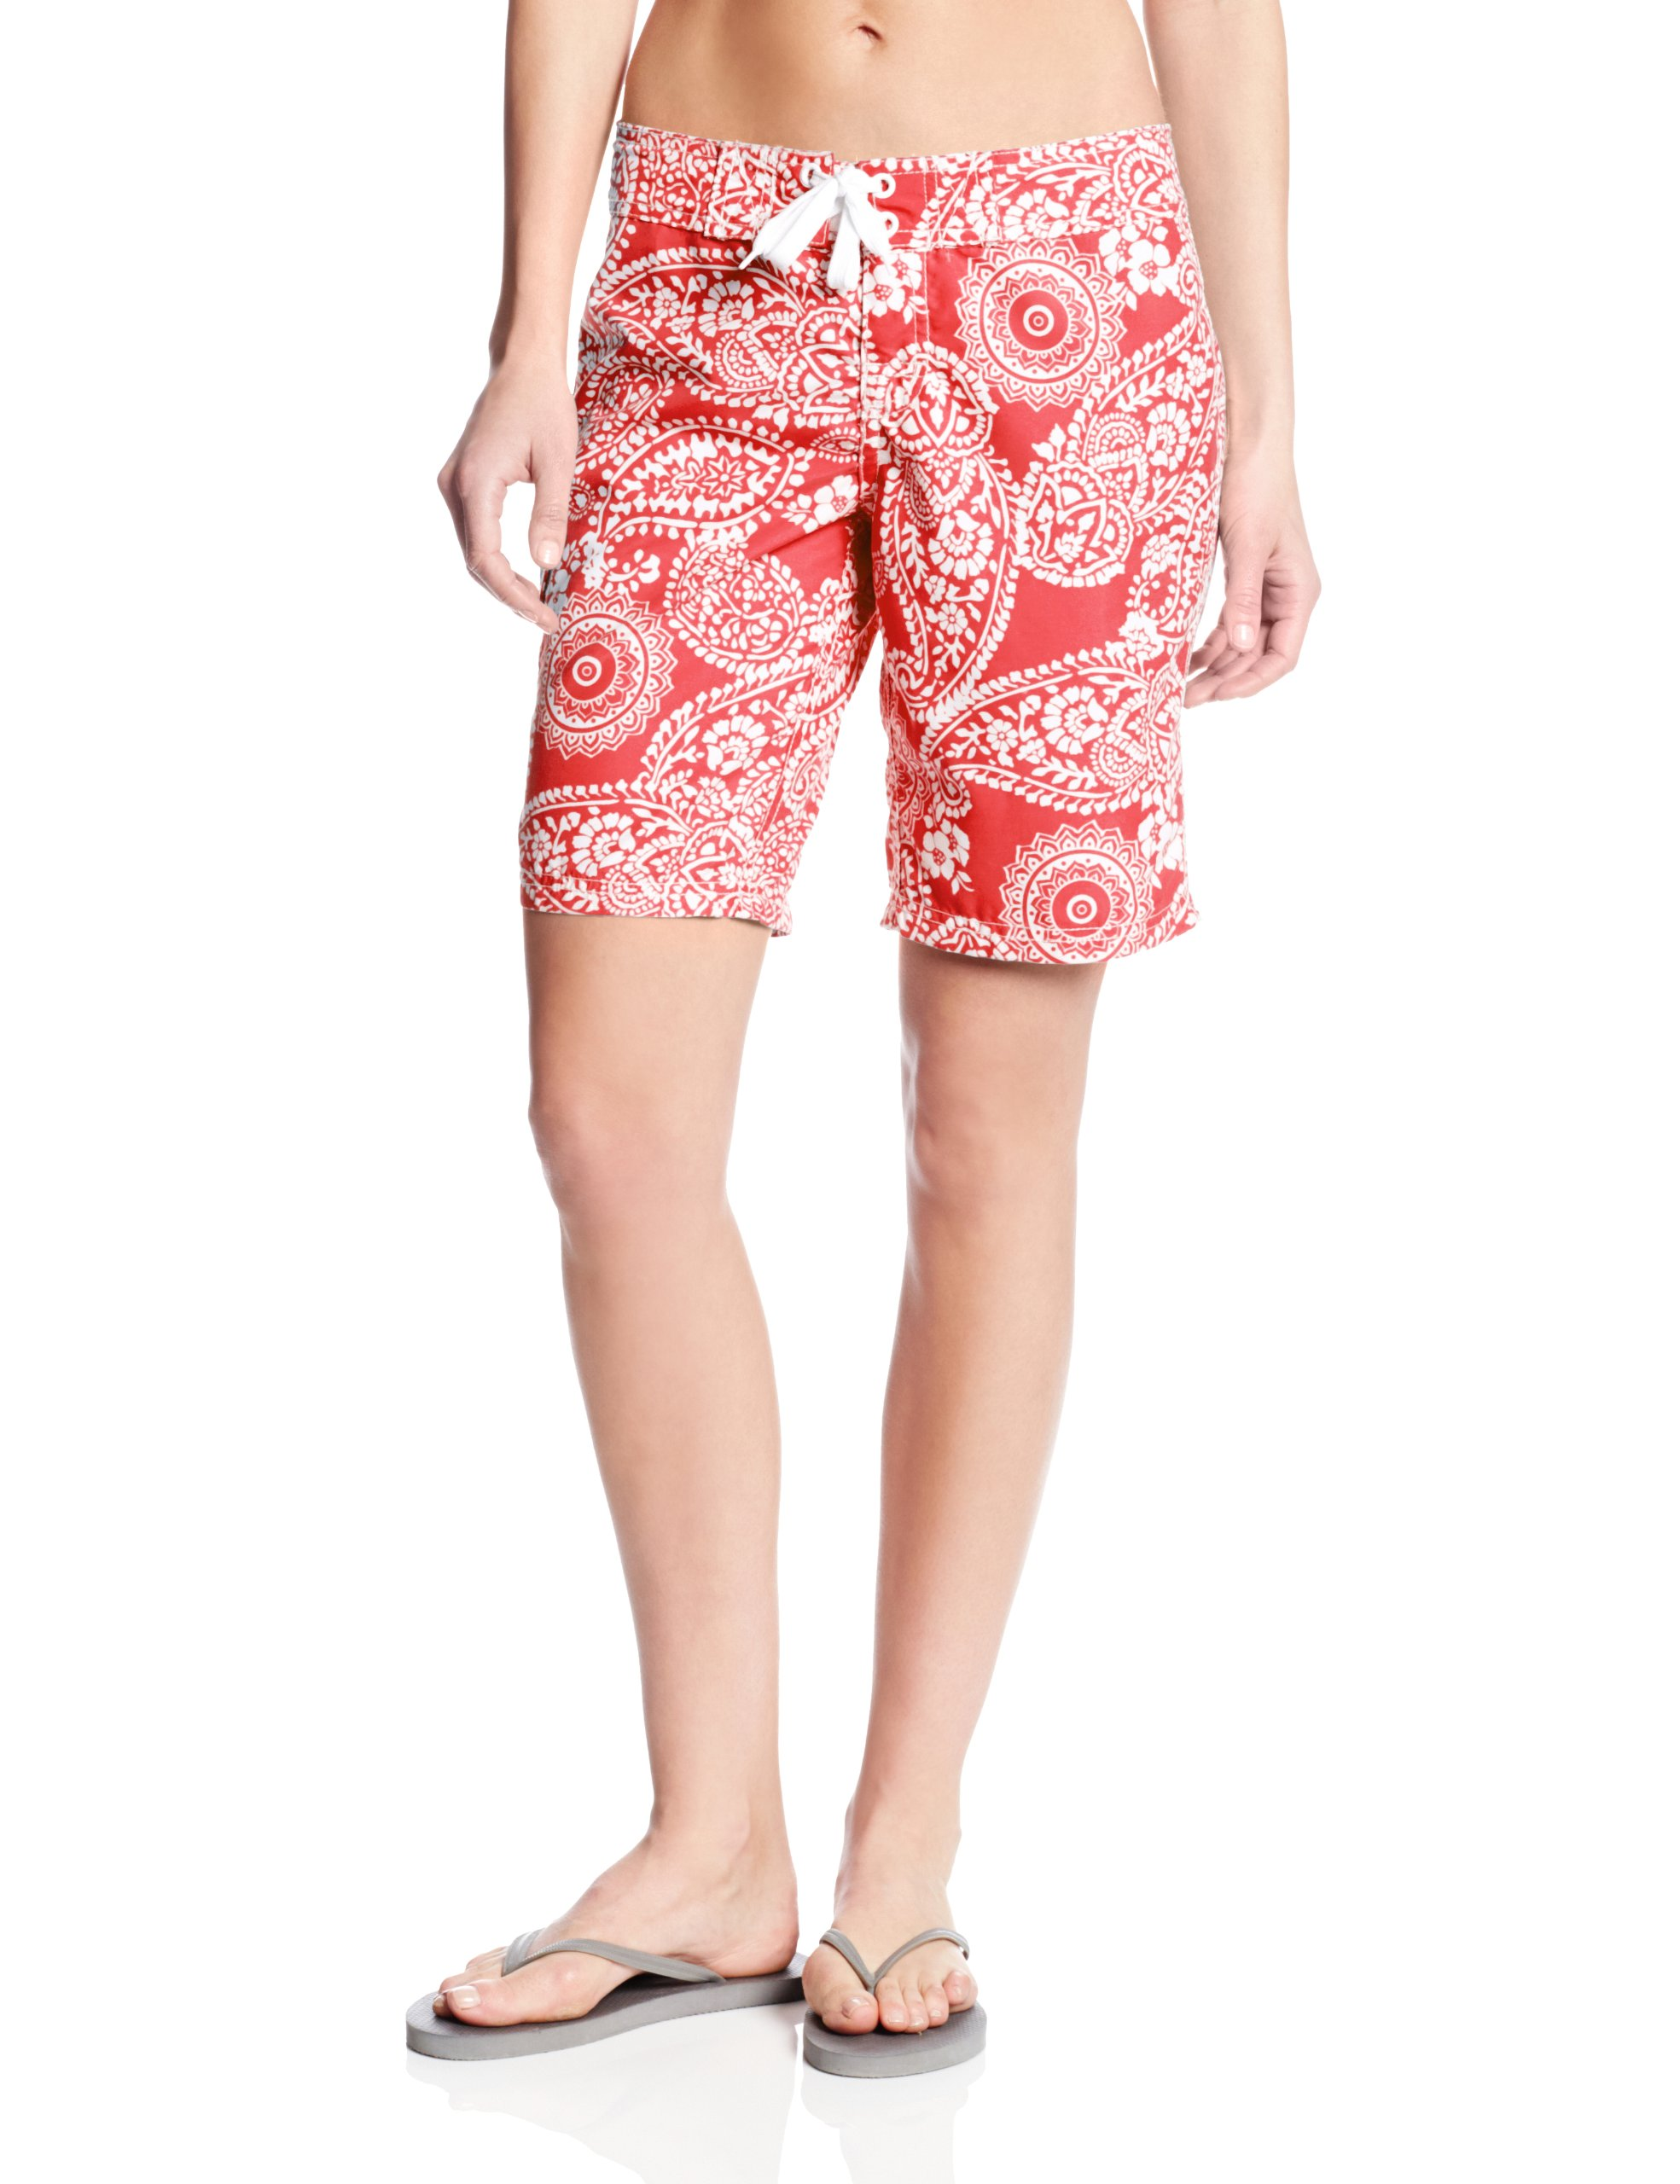 Kanu Surf Women's UPF 50+ Quick Dry Active Prints I Swim Boardshort, Coral, 12